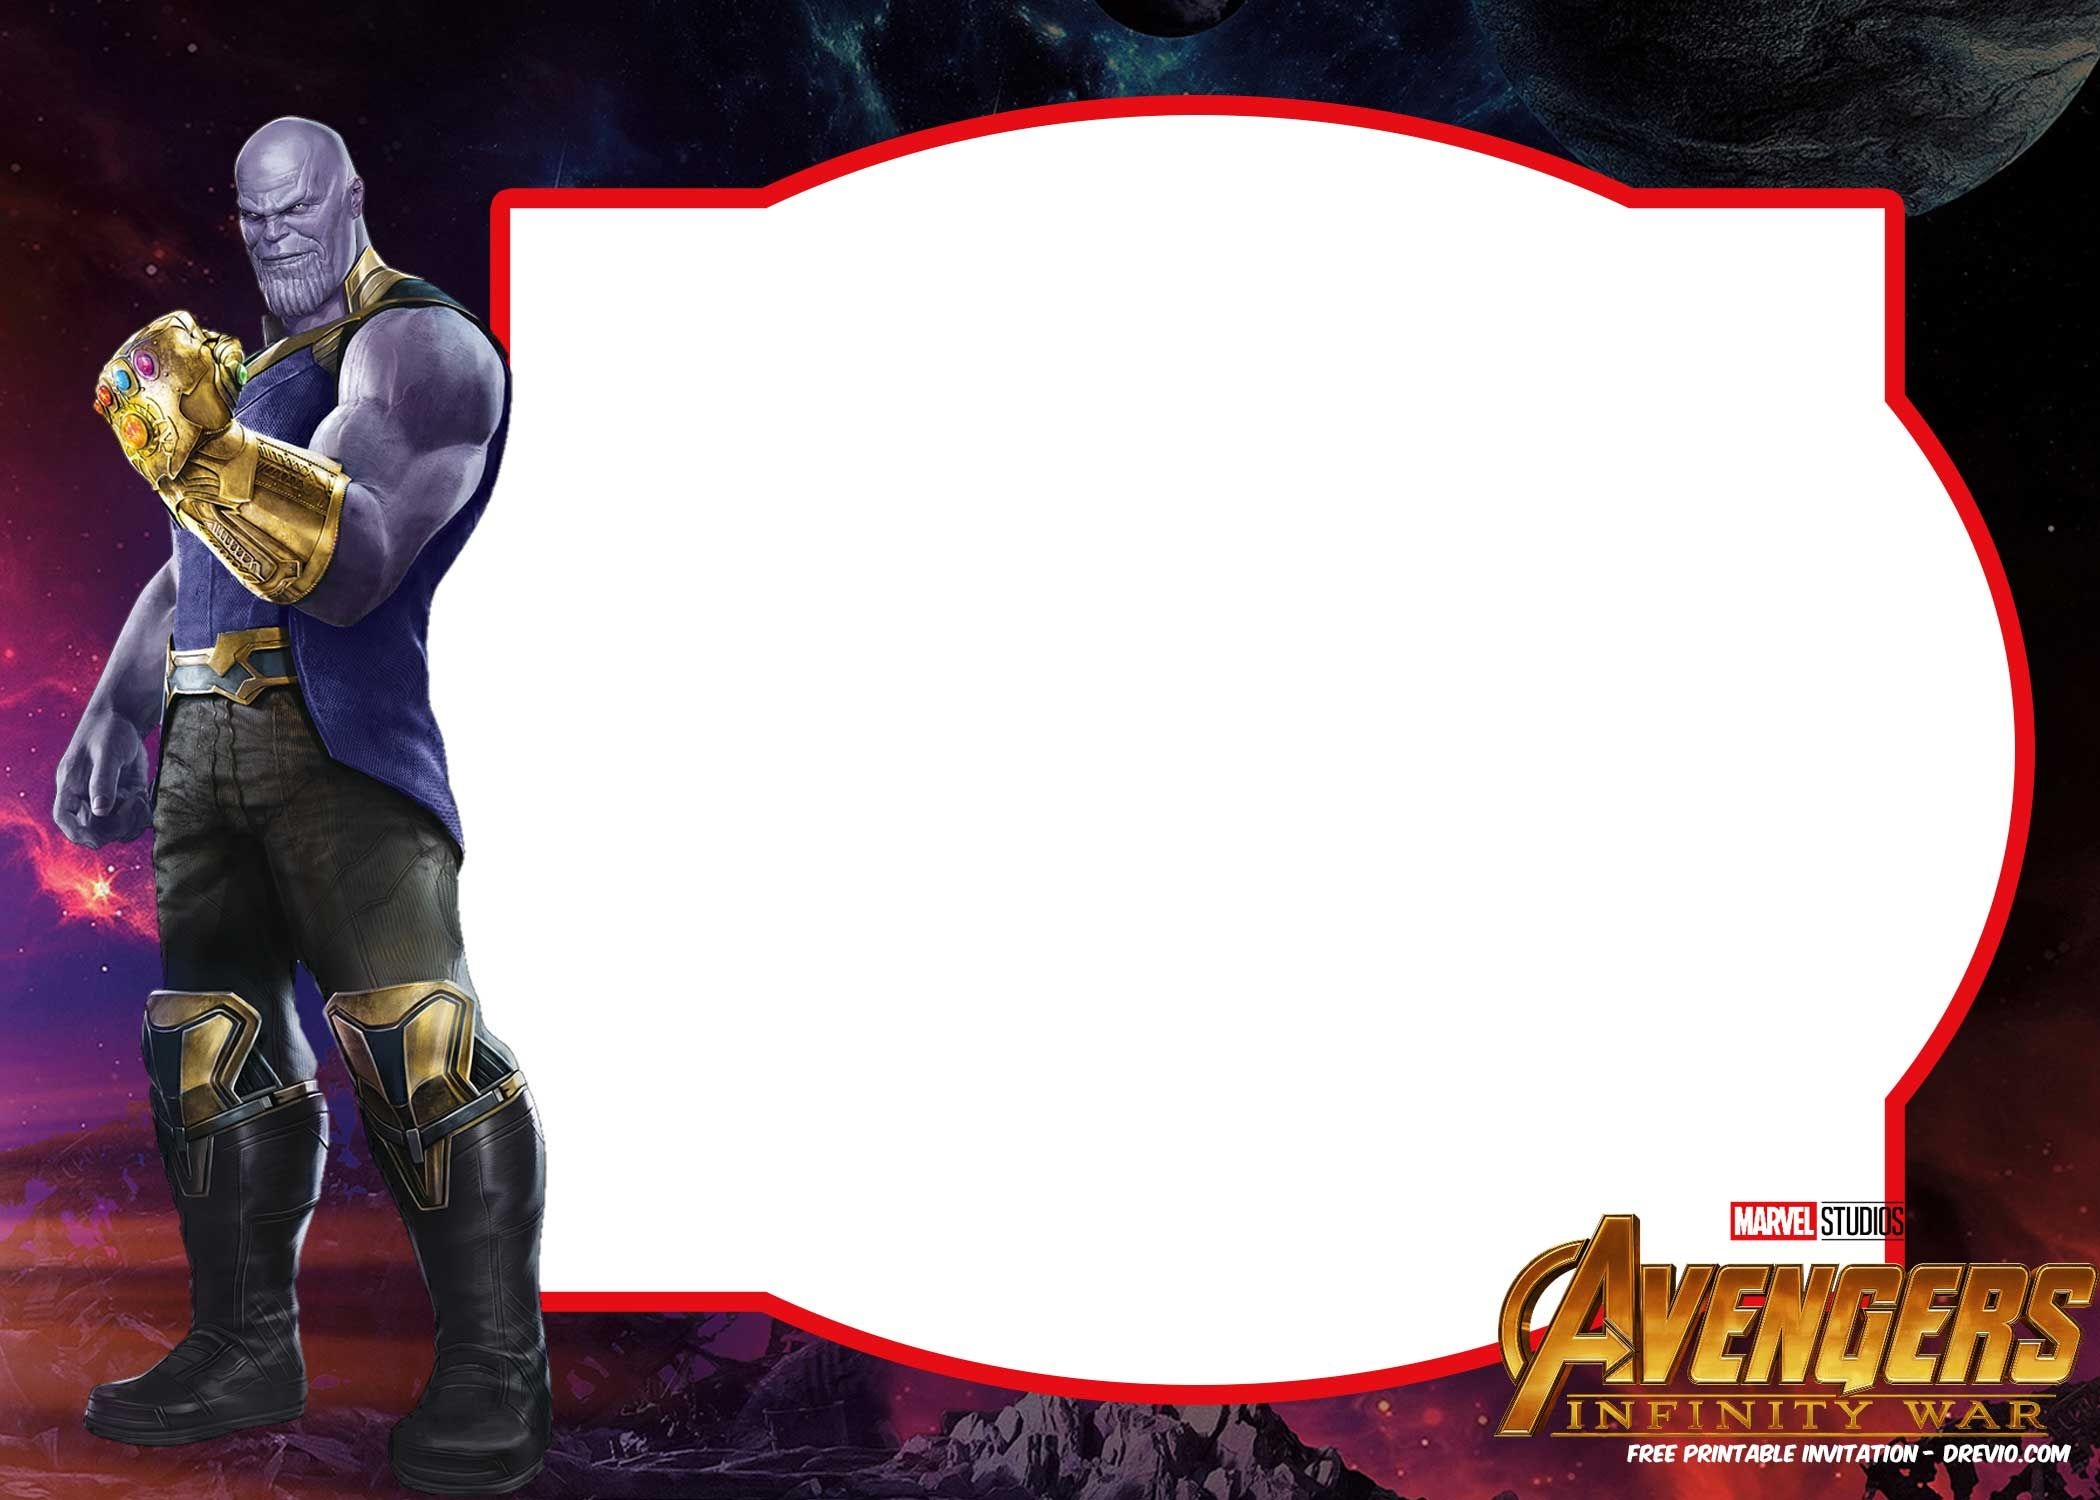 Free Avengers Infinity Wars Birthday Invitation Templates - All - Free Printable Avengers Birthday Party Invitations